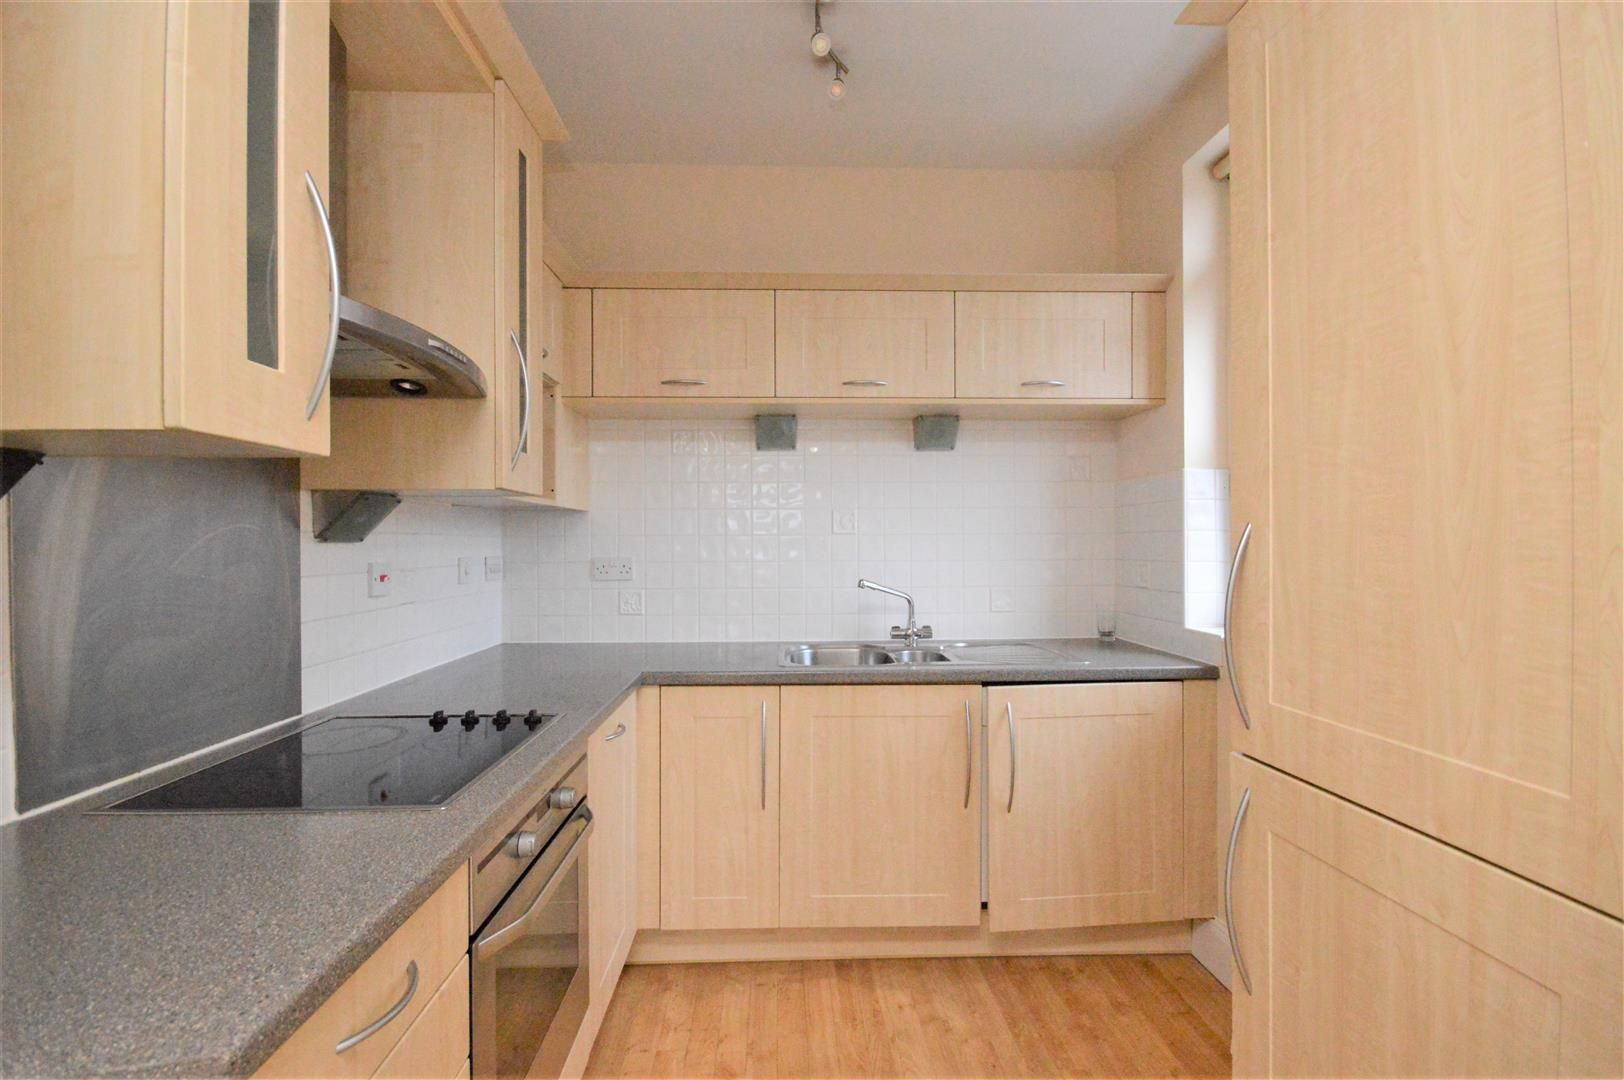 1 bed apartment for sale  - Property Image 3